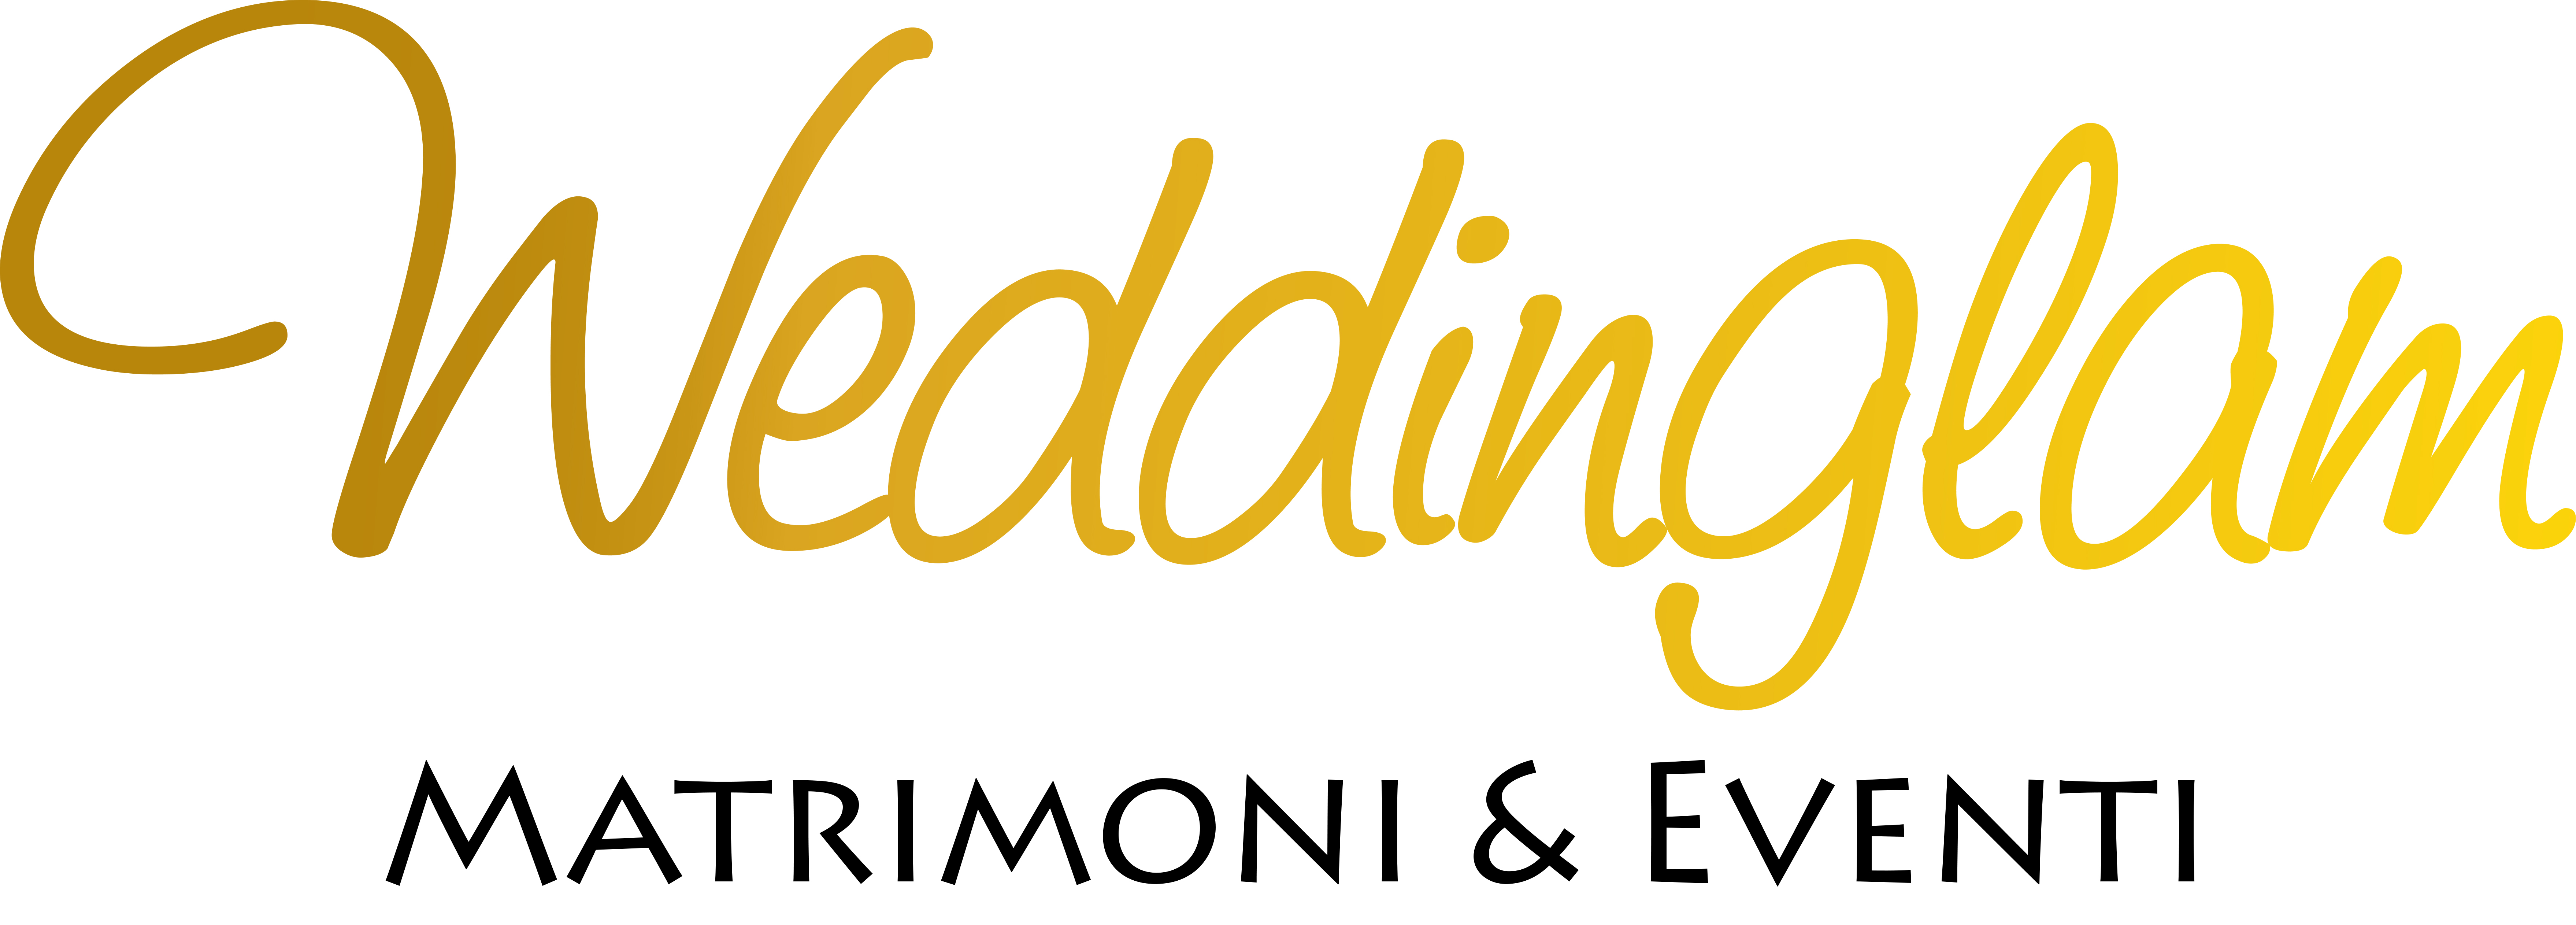 Wedding Planner in Tuscany, Italy! Creative Wedding Design!